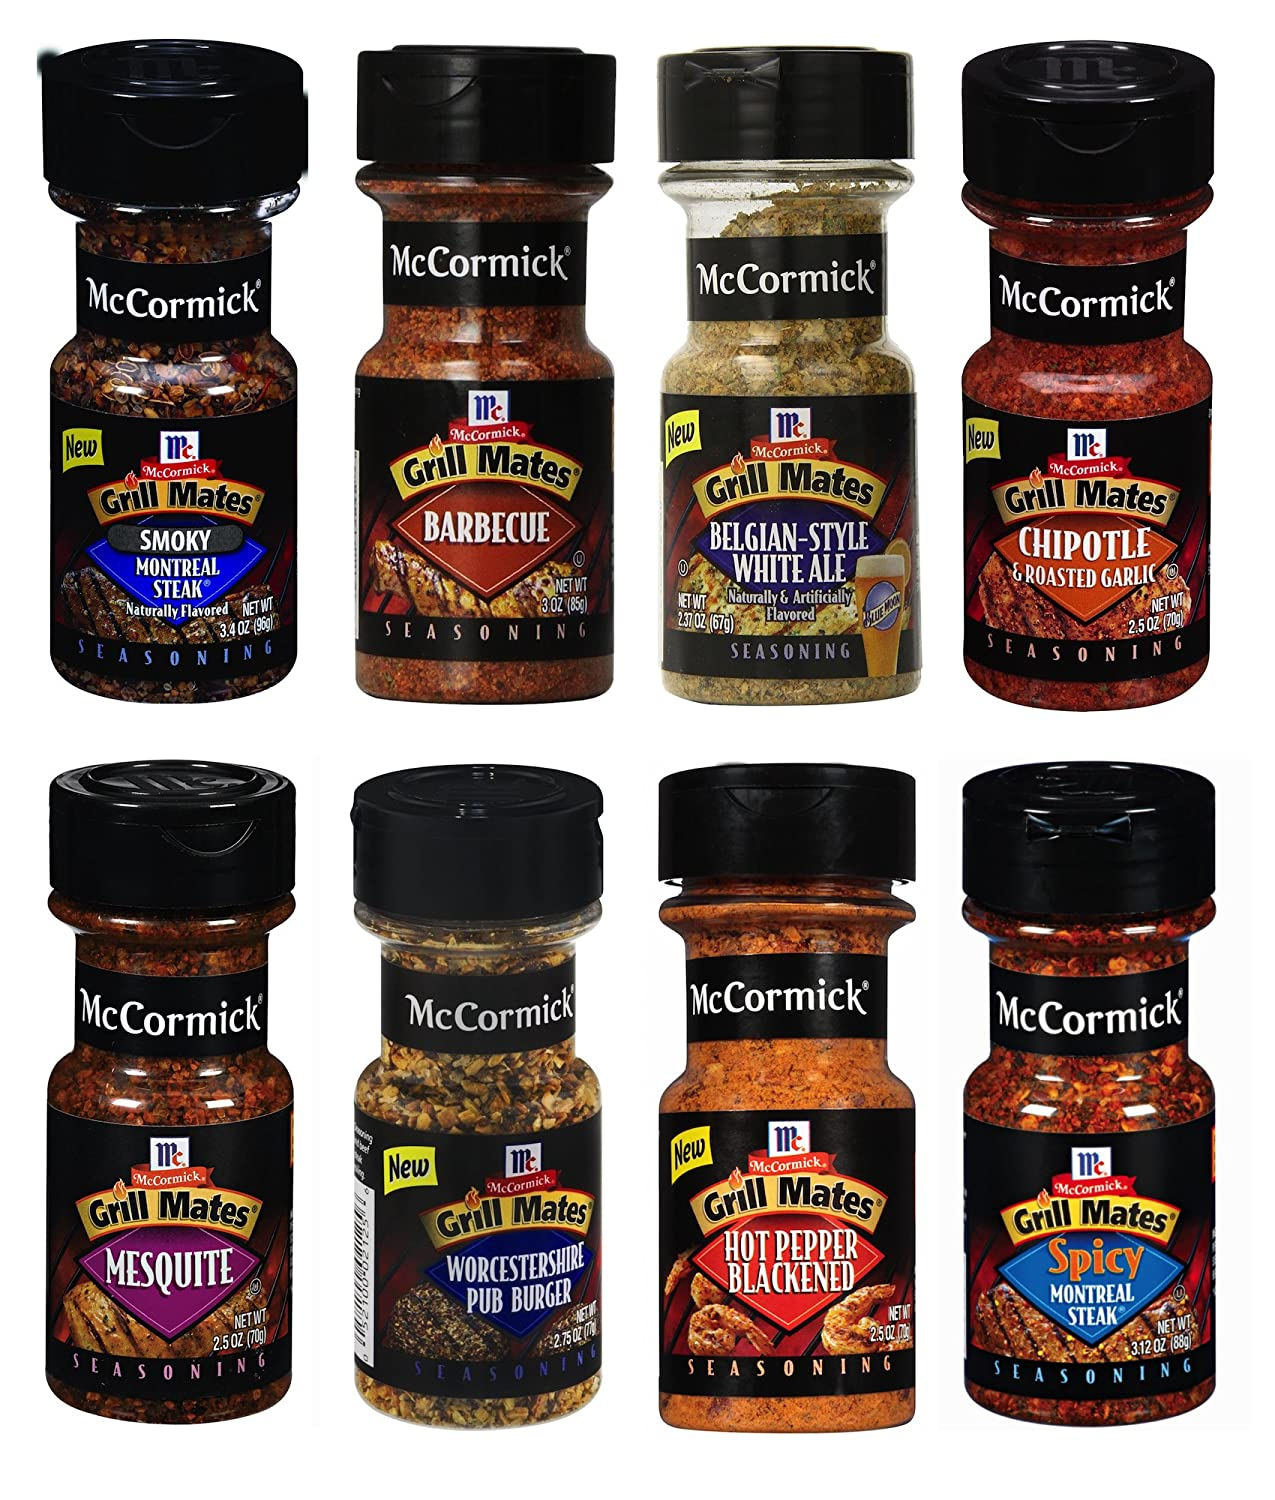 Assorted McCormick Grill Mates Bottle Blend Seasonings Variety Pack, 8